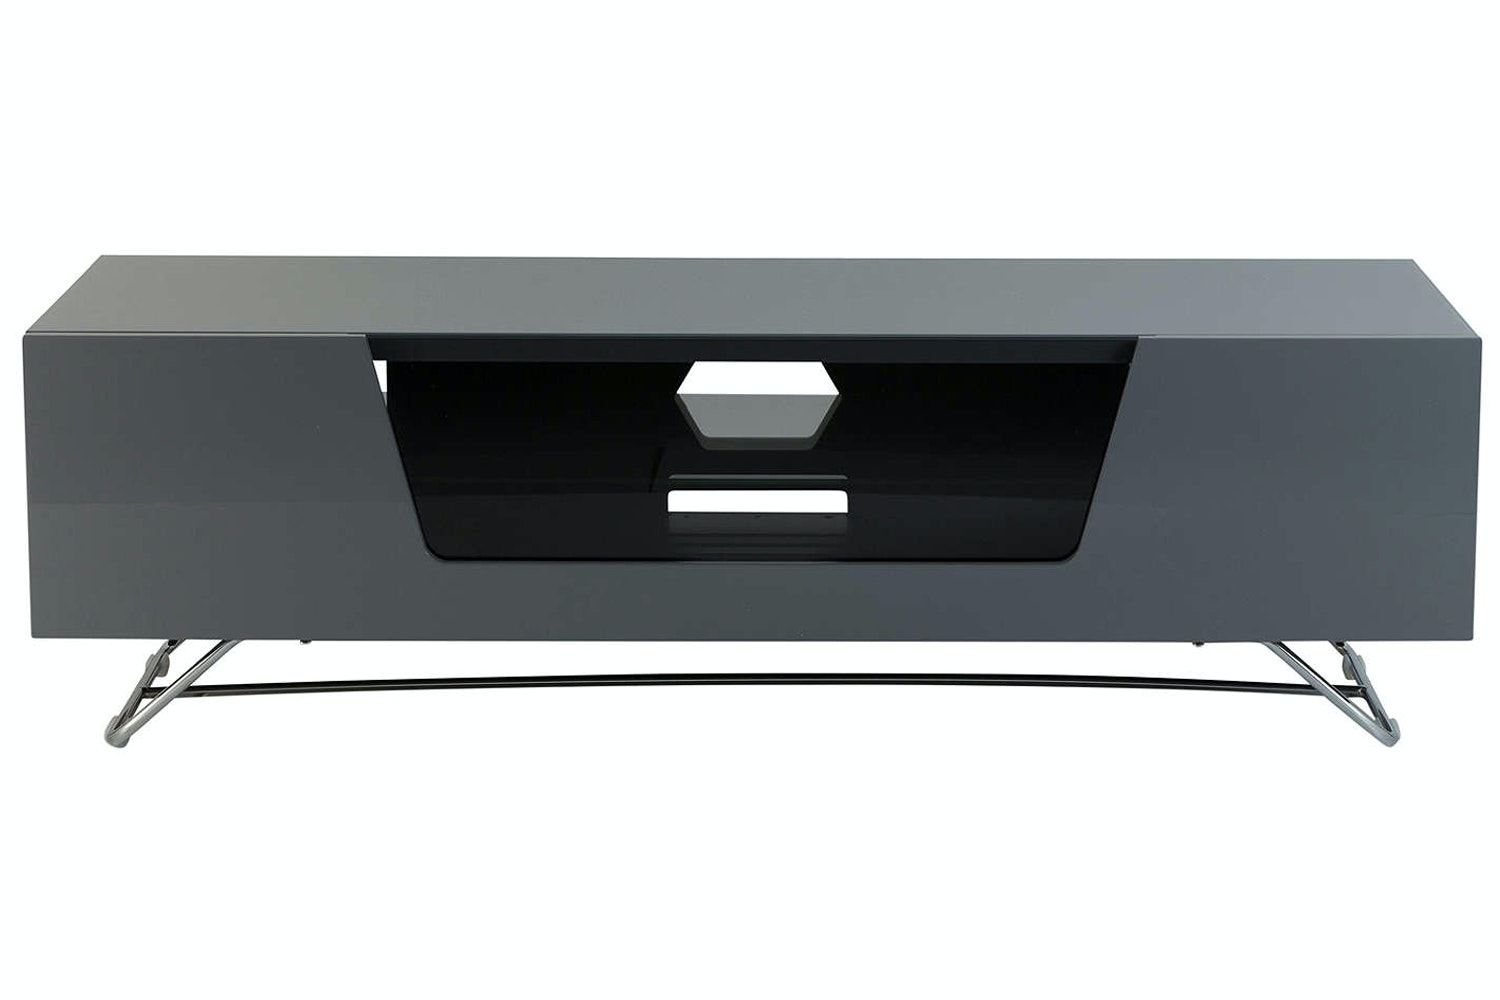 Alphason Chromium 2 1200 TV Cabinet | Grey